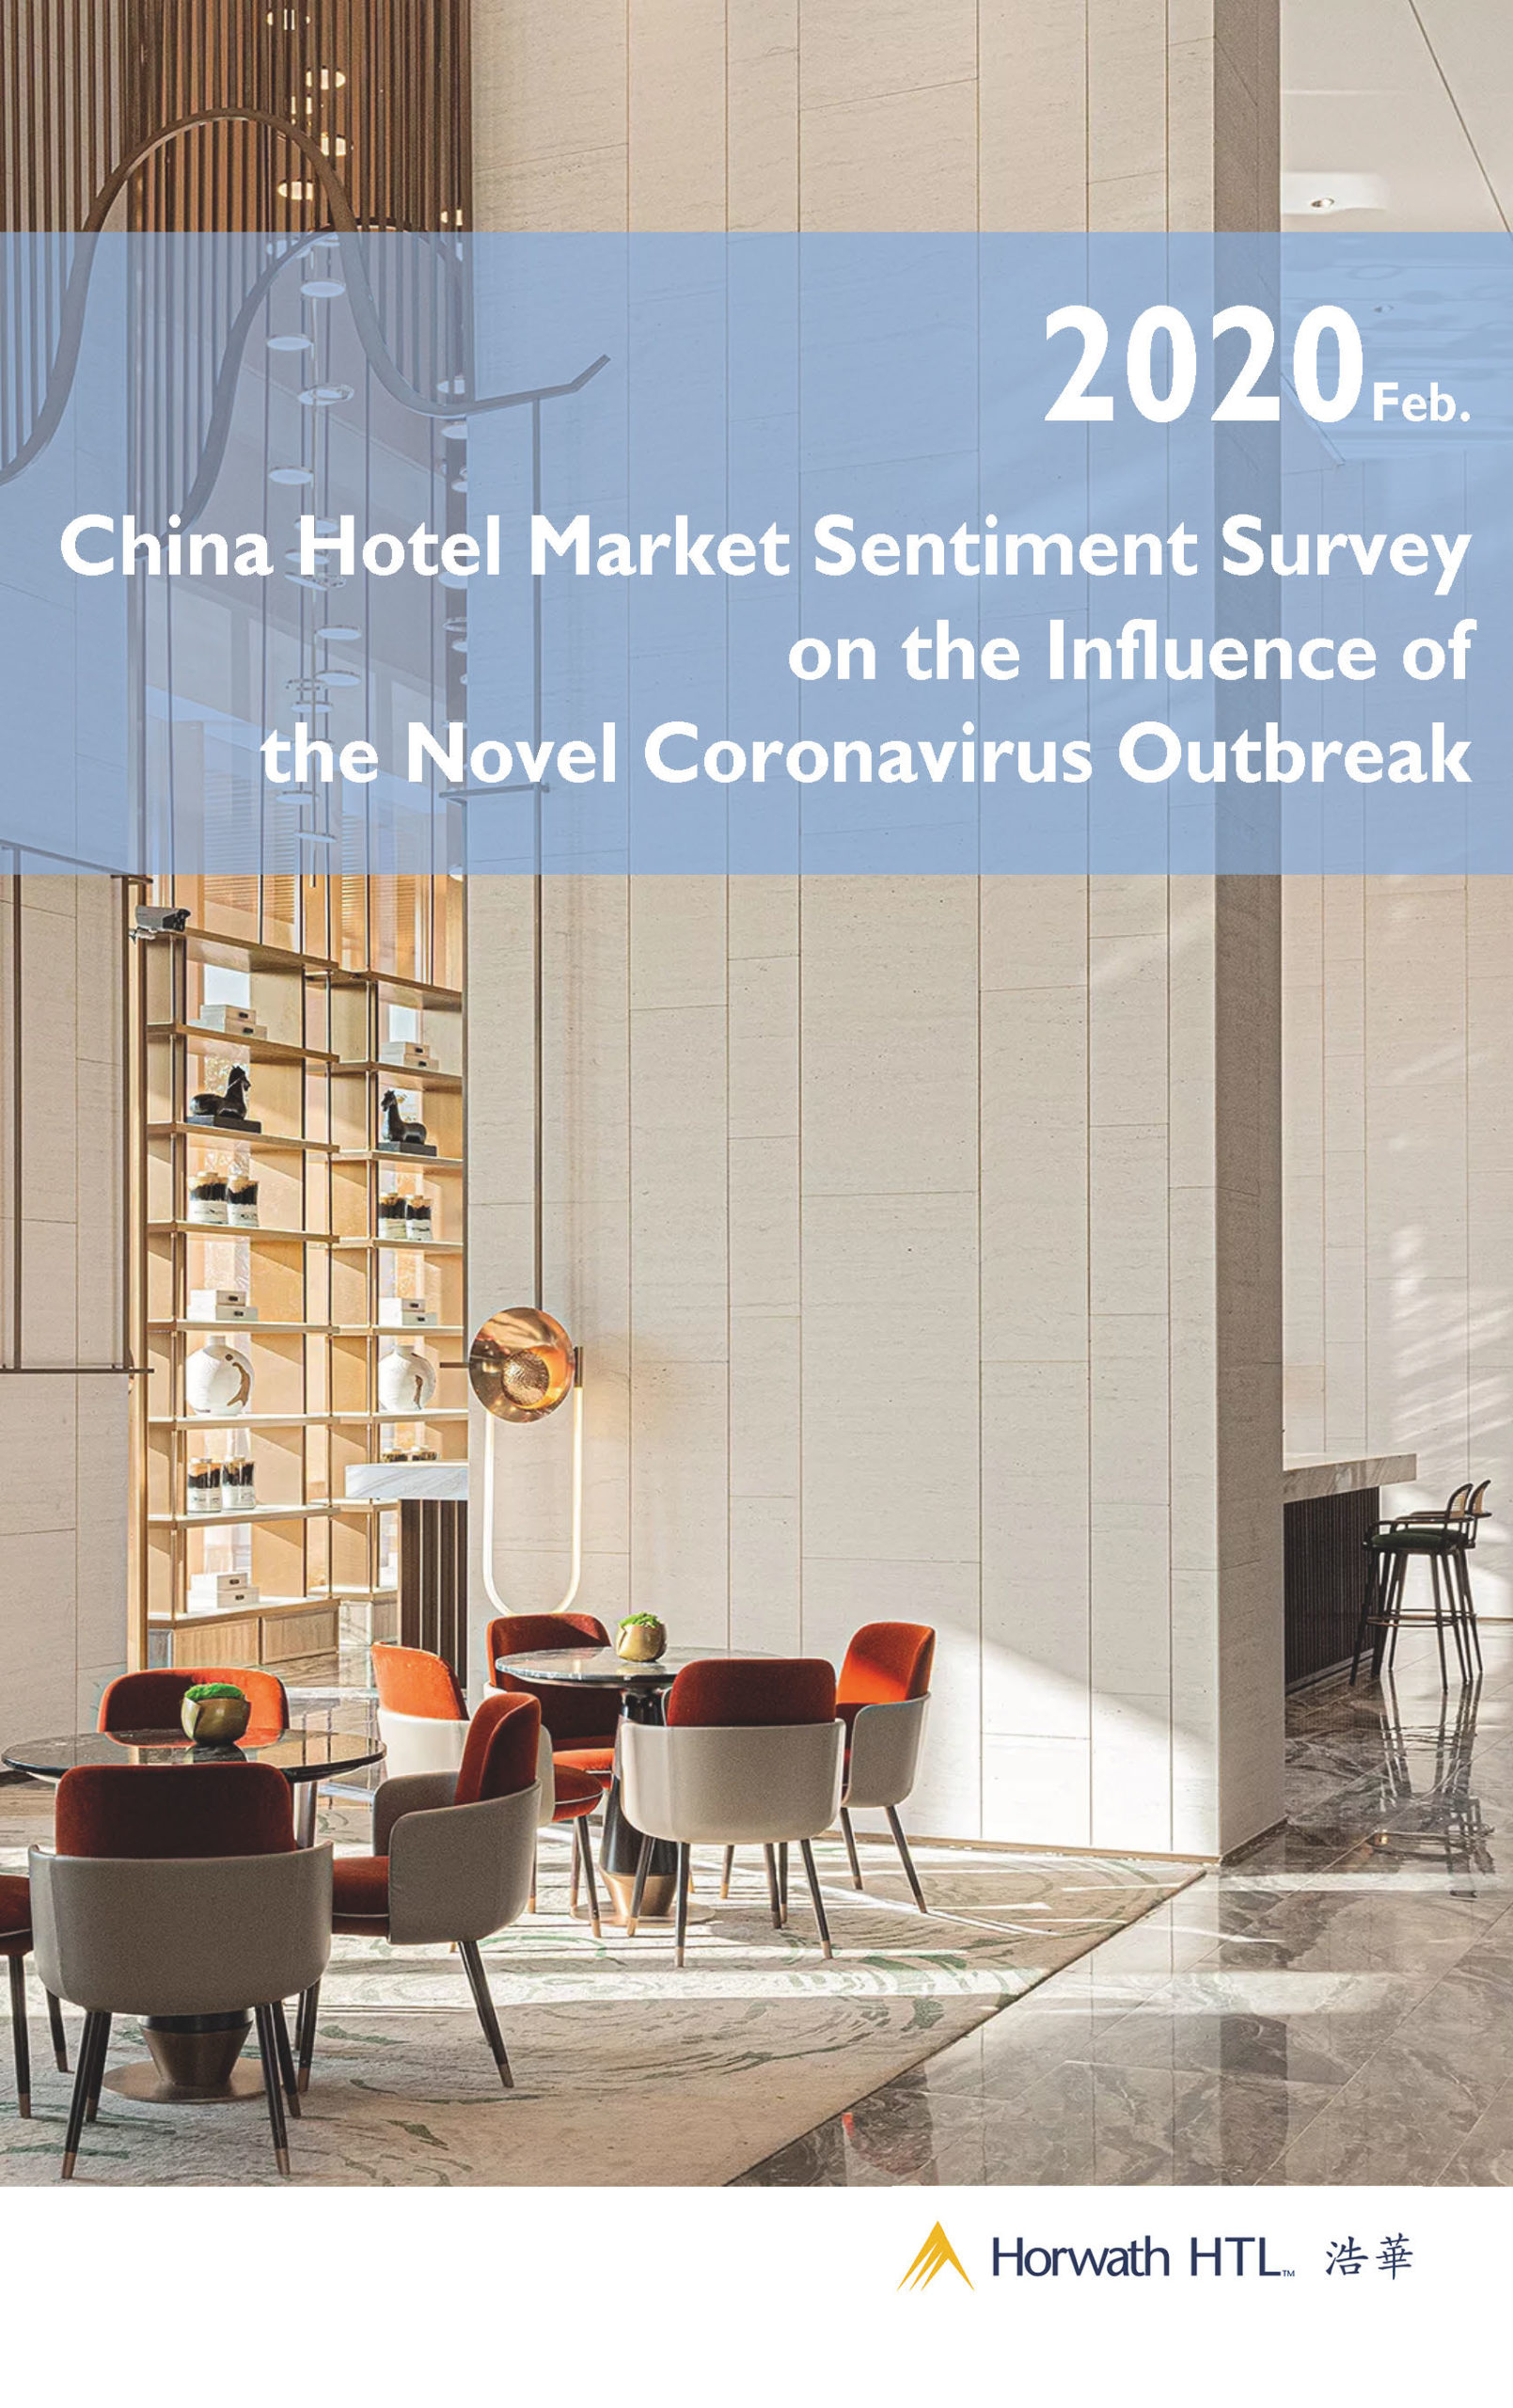 China Hotel Market Sentiment Survey Coronavirus Page 01